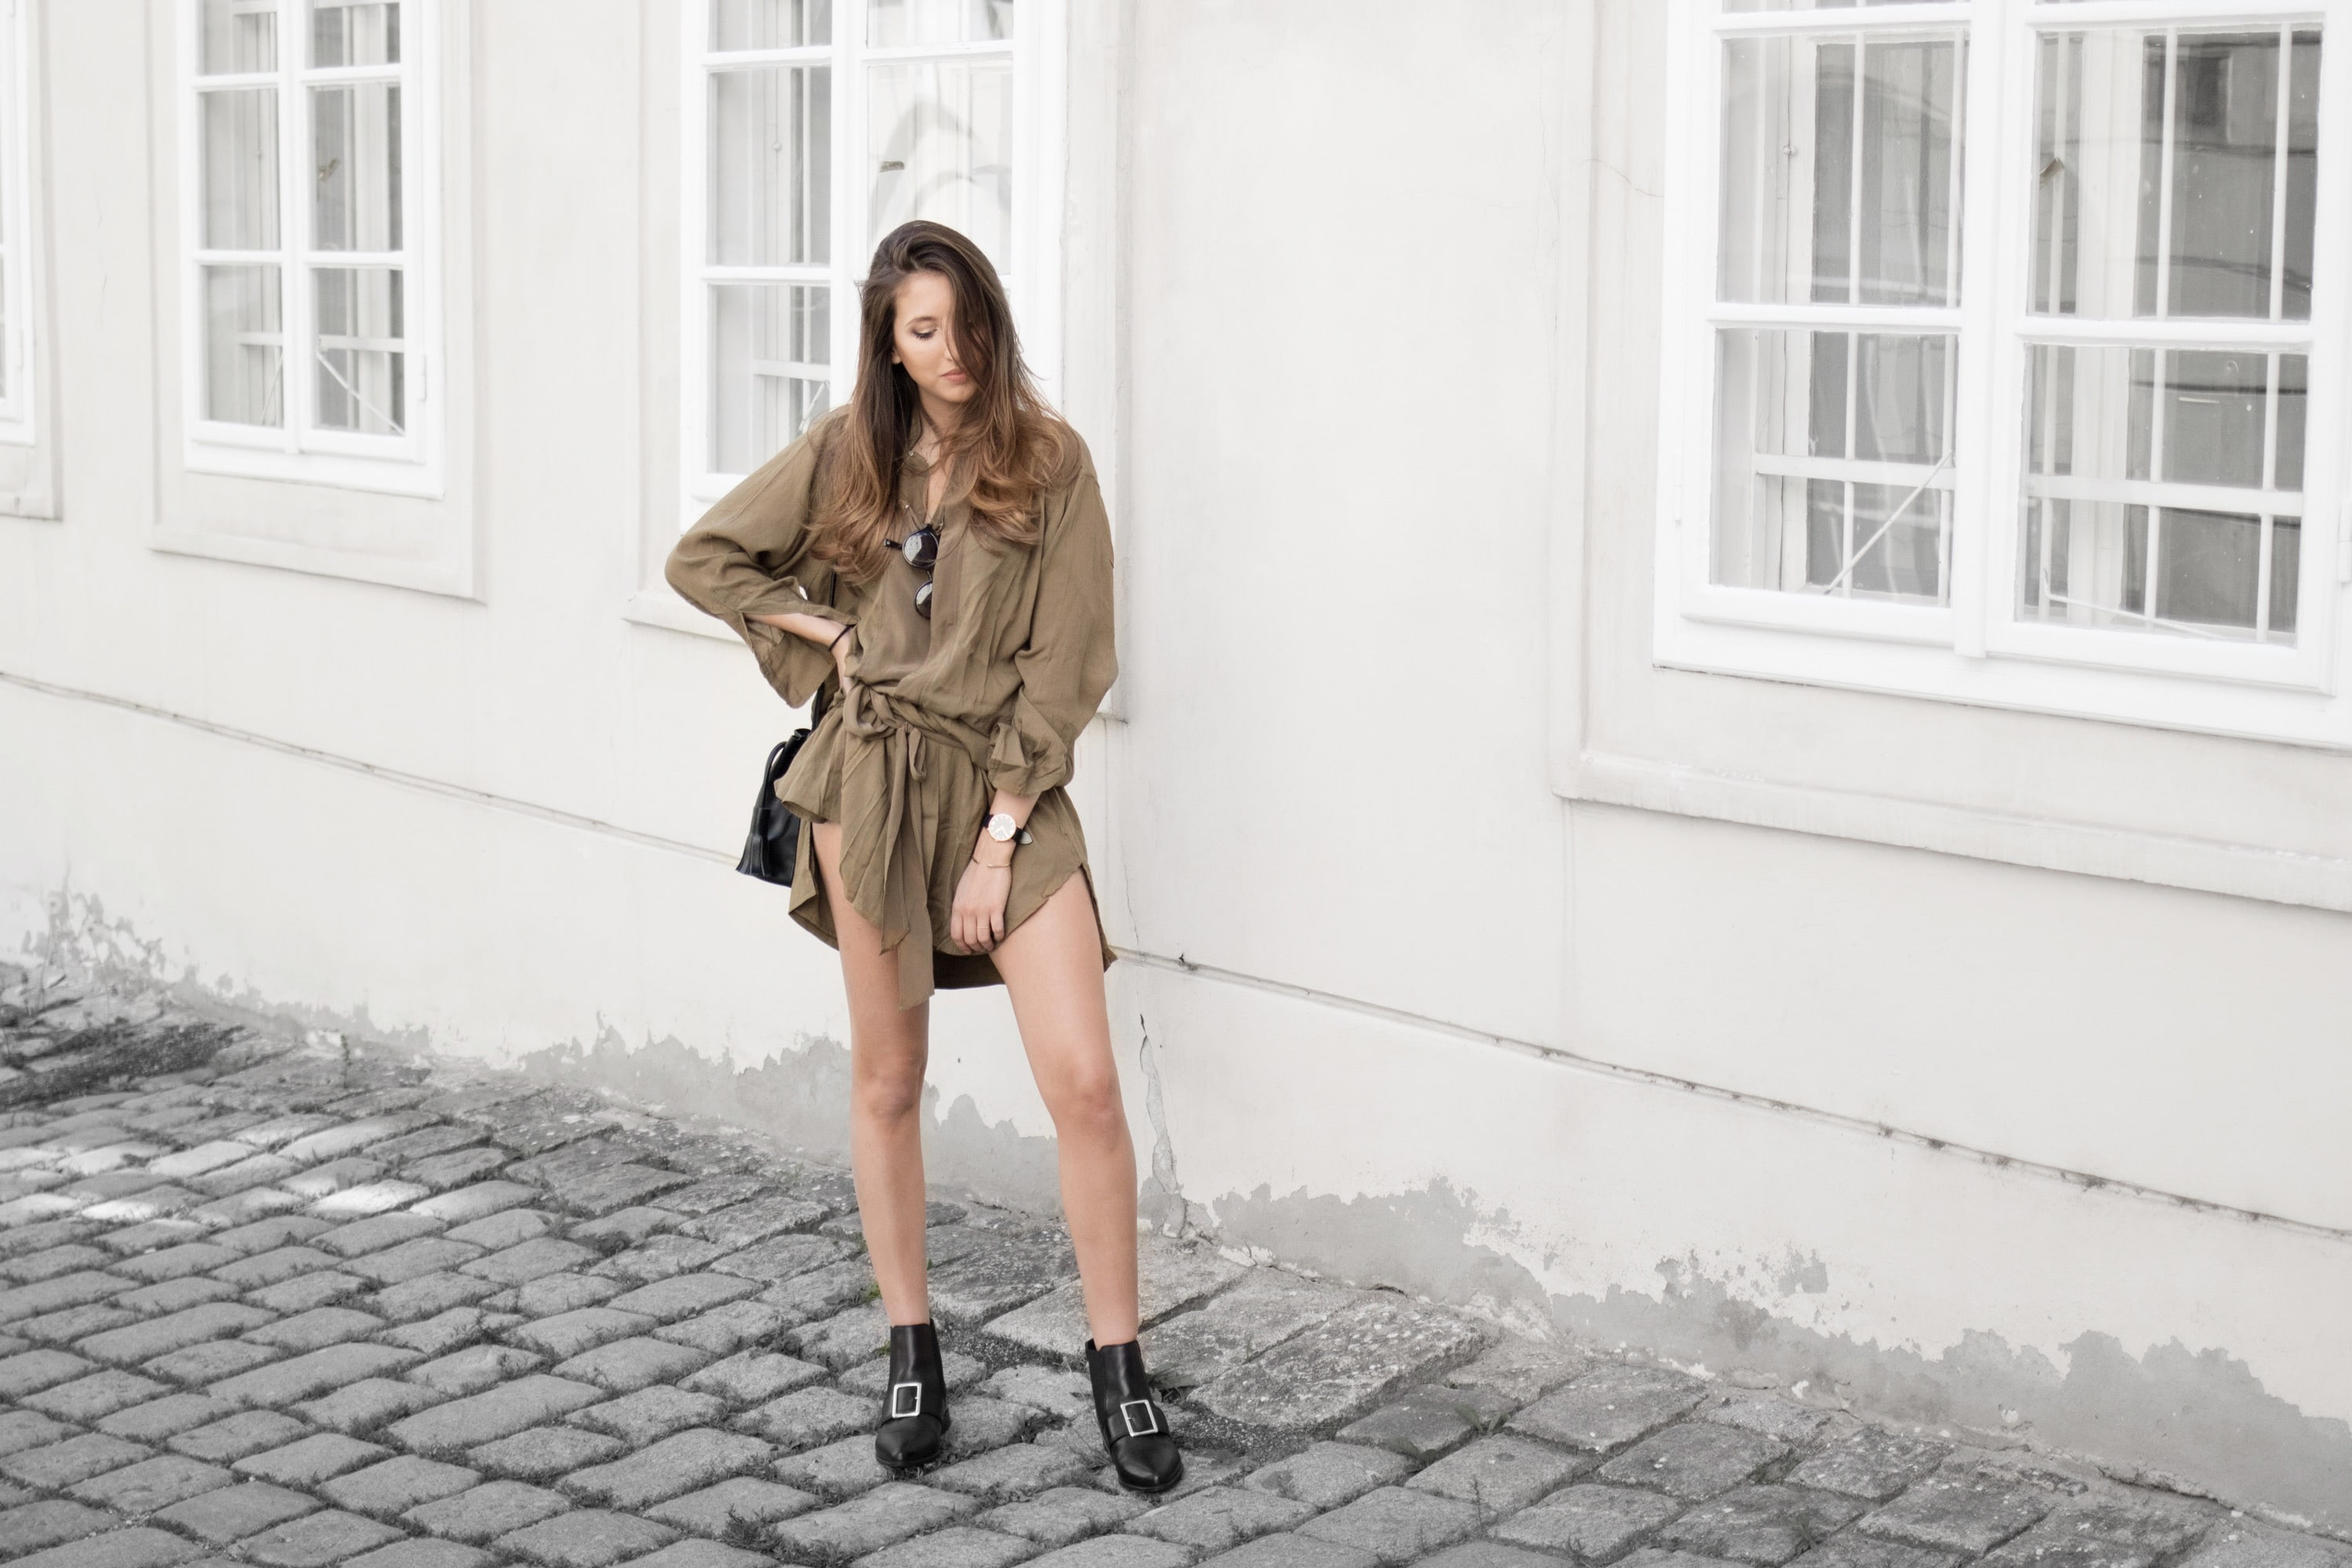 magali_pascal_khaki_dress_lenamarias5